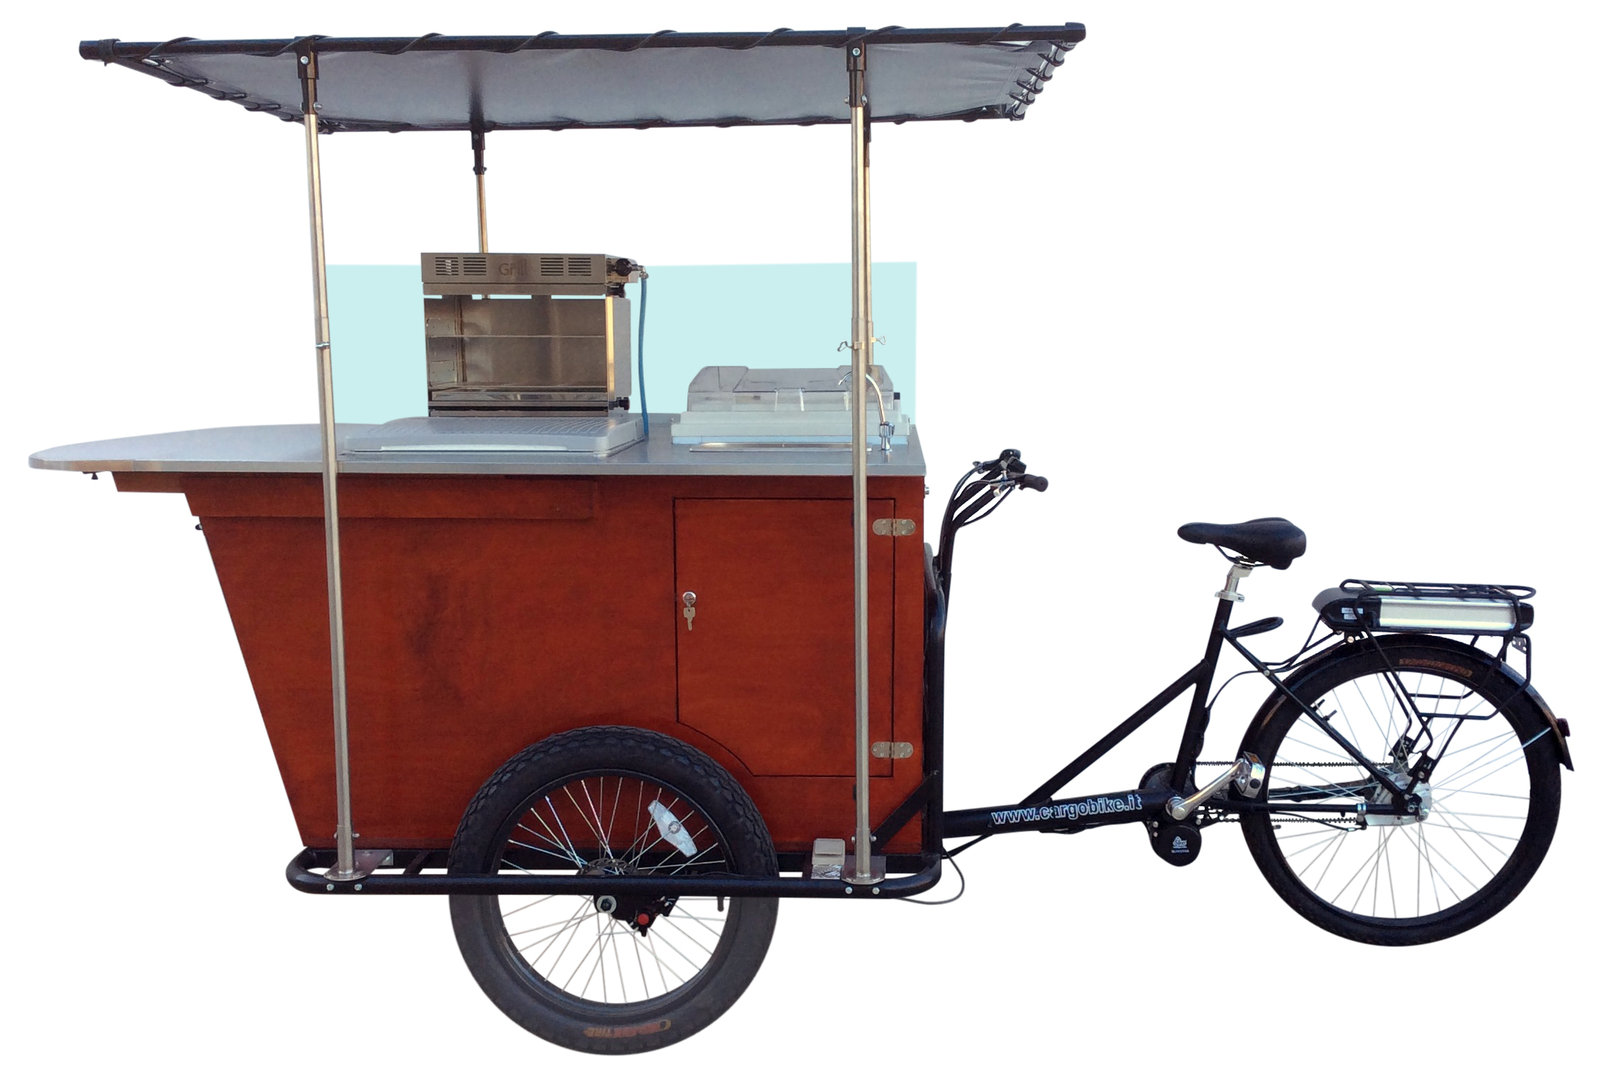 STREET FOOD BIKE YACHTING BASIC